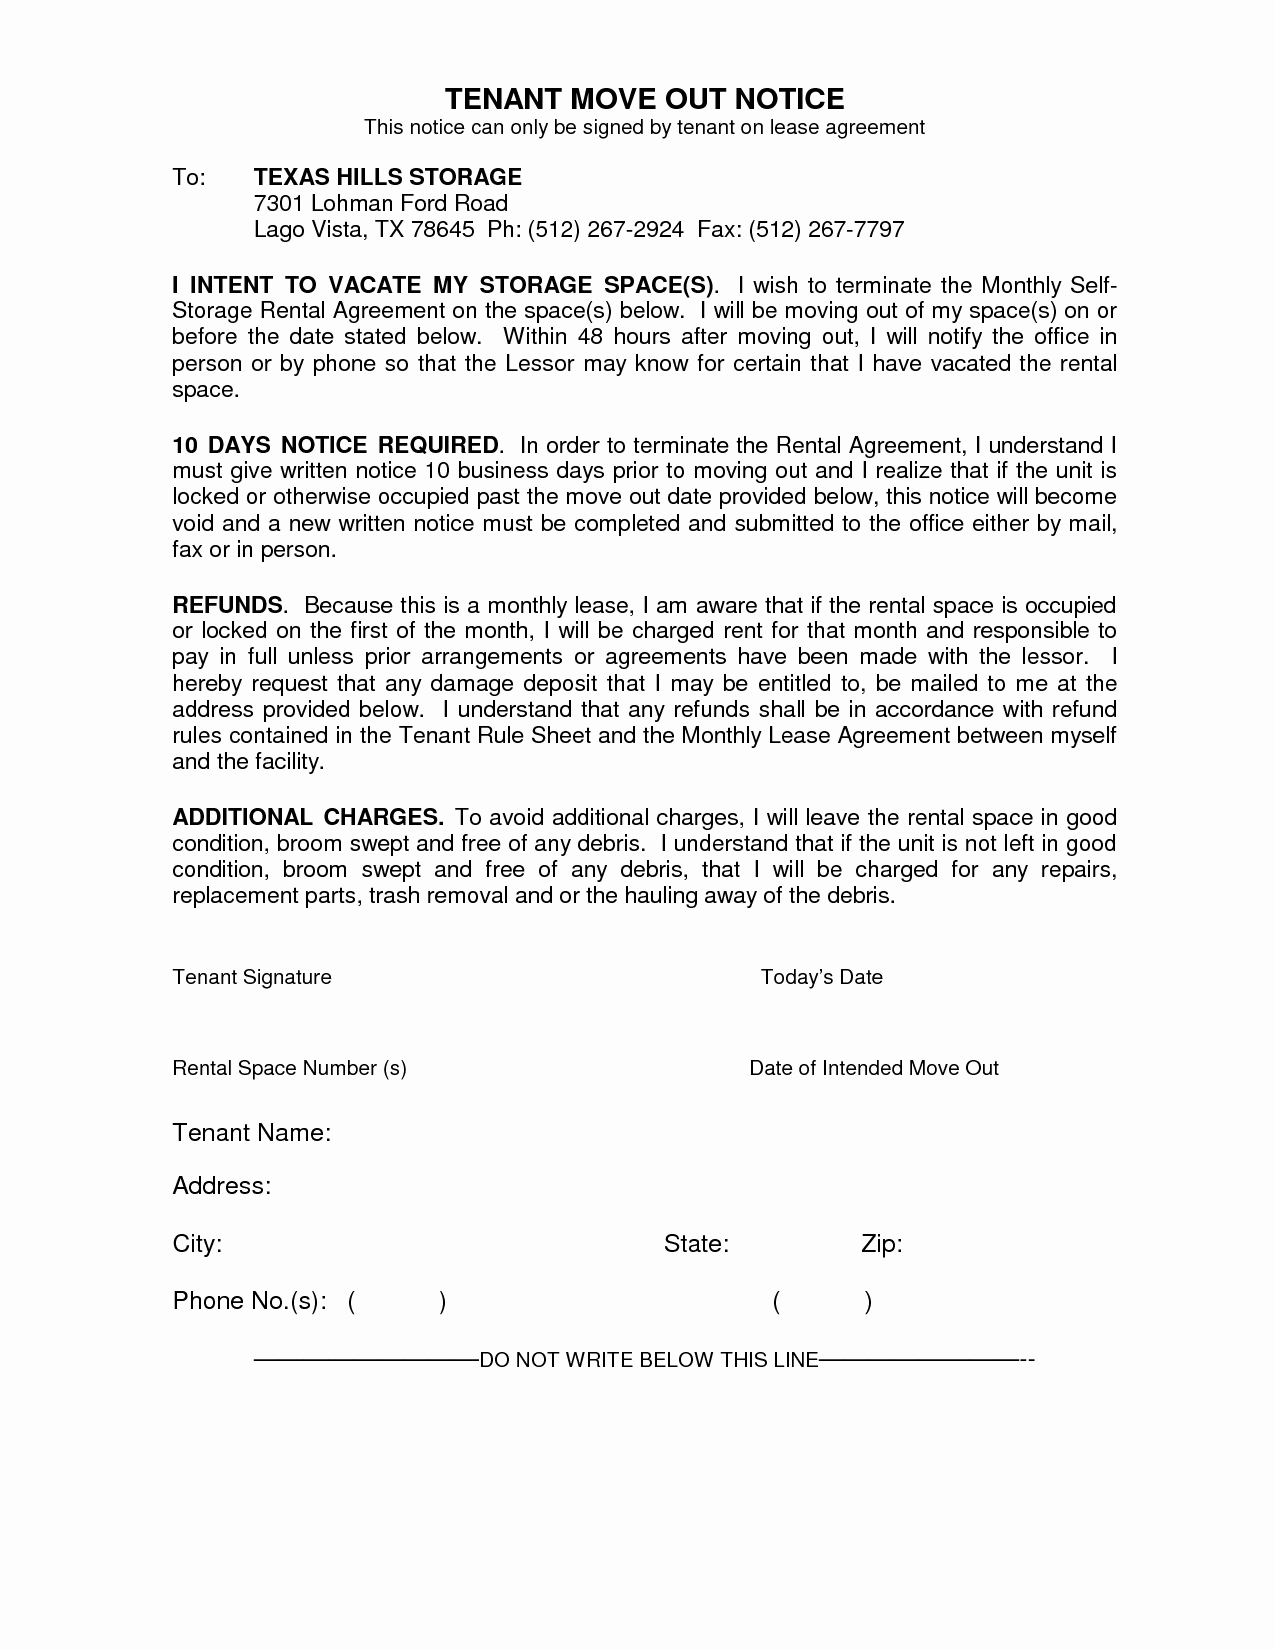 Tenant Move Out Letter Elegant Best S Of Move Out Notice to Tenant Template 30 Day